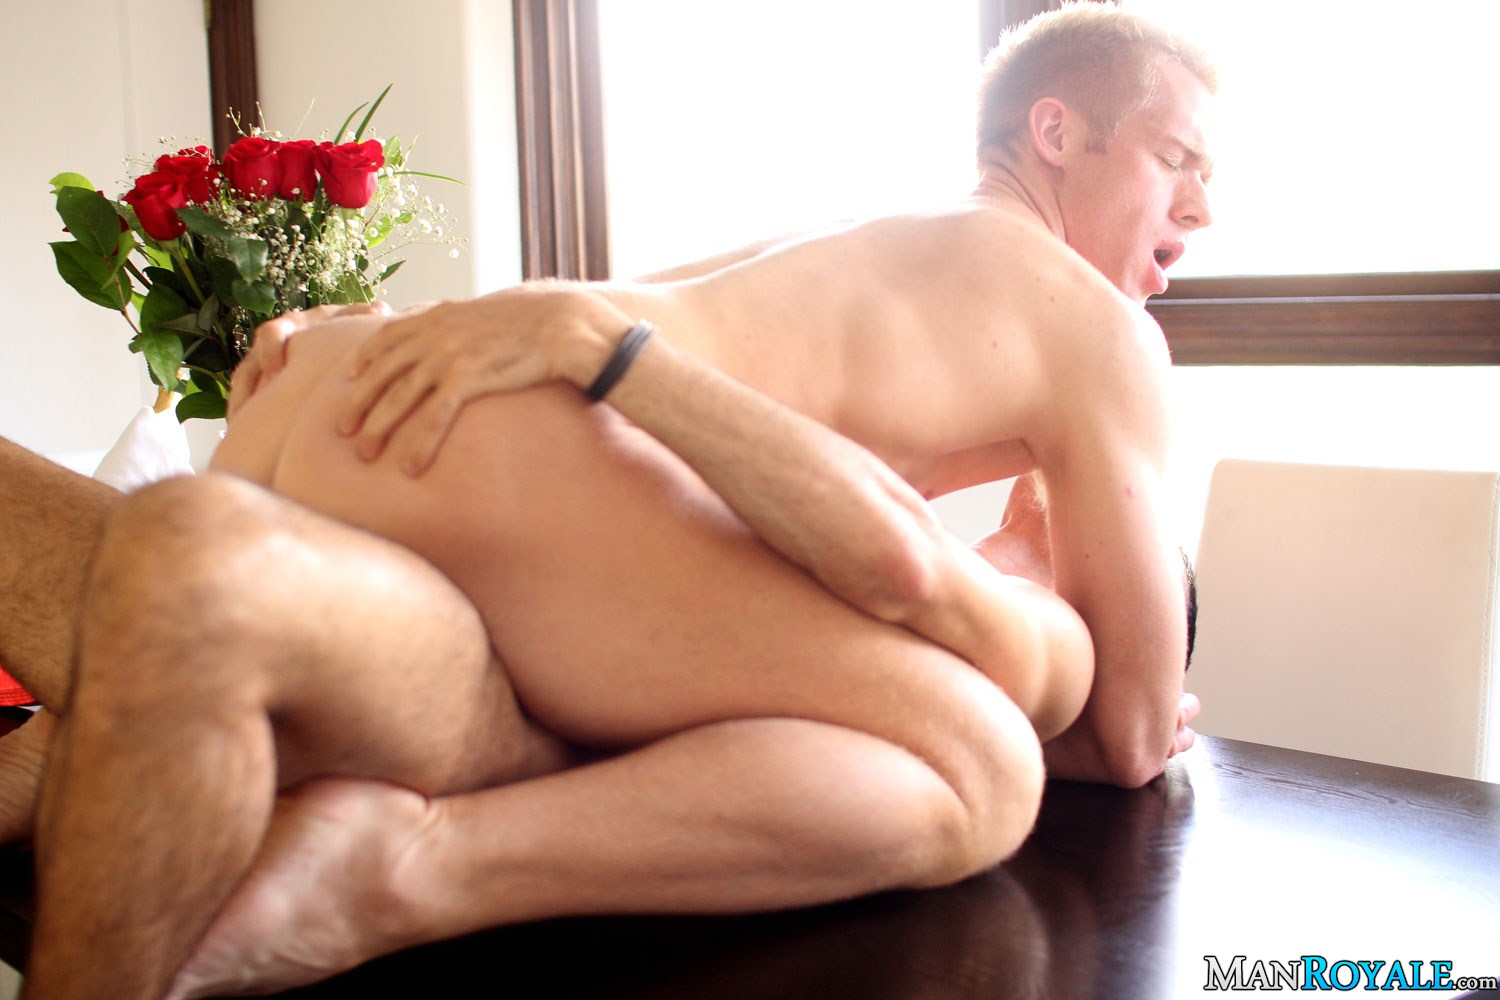 Gay cum sex galleries since both folks are 3